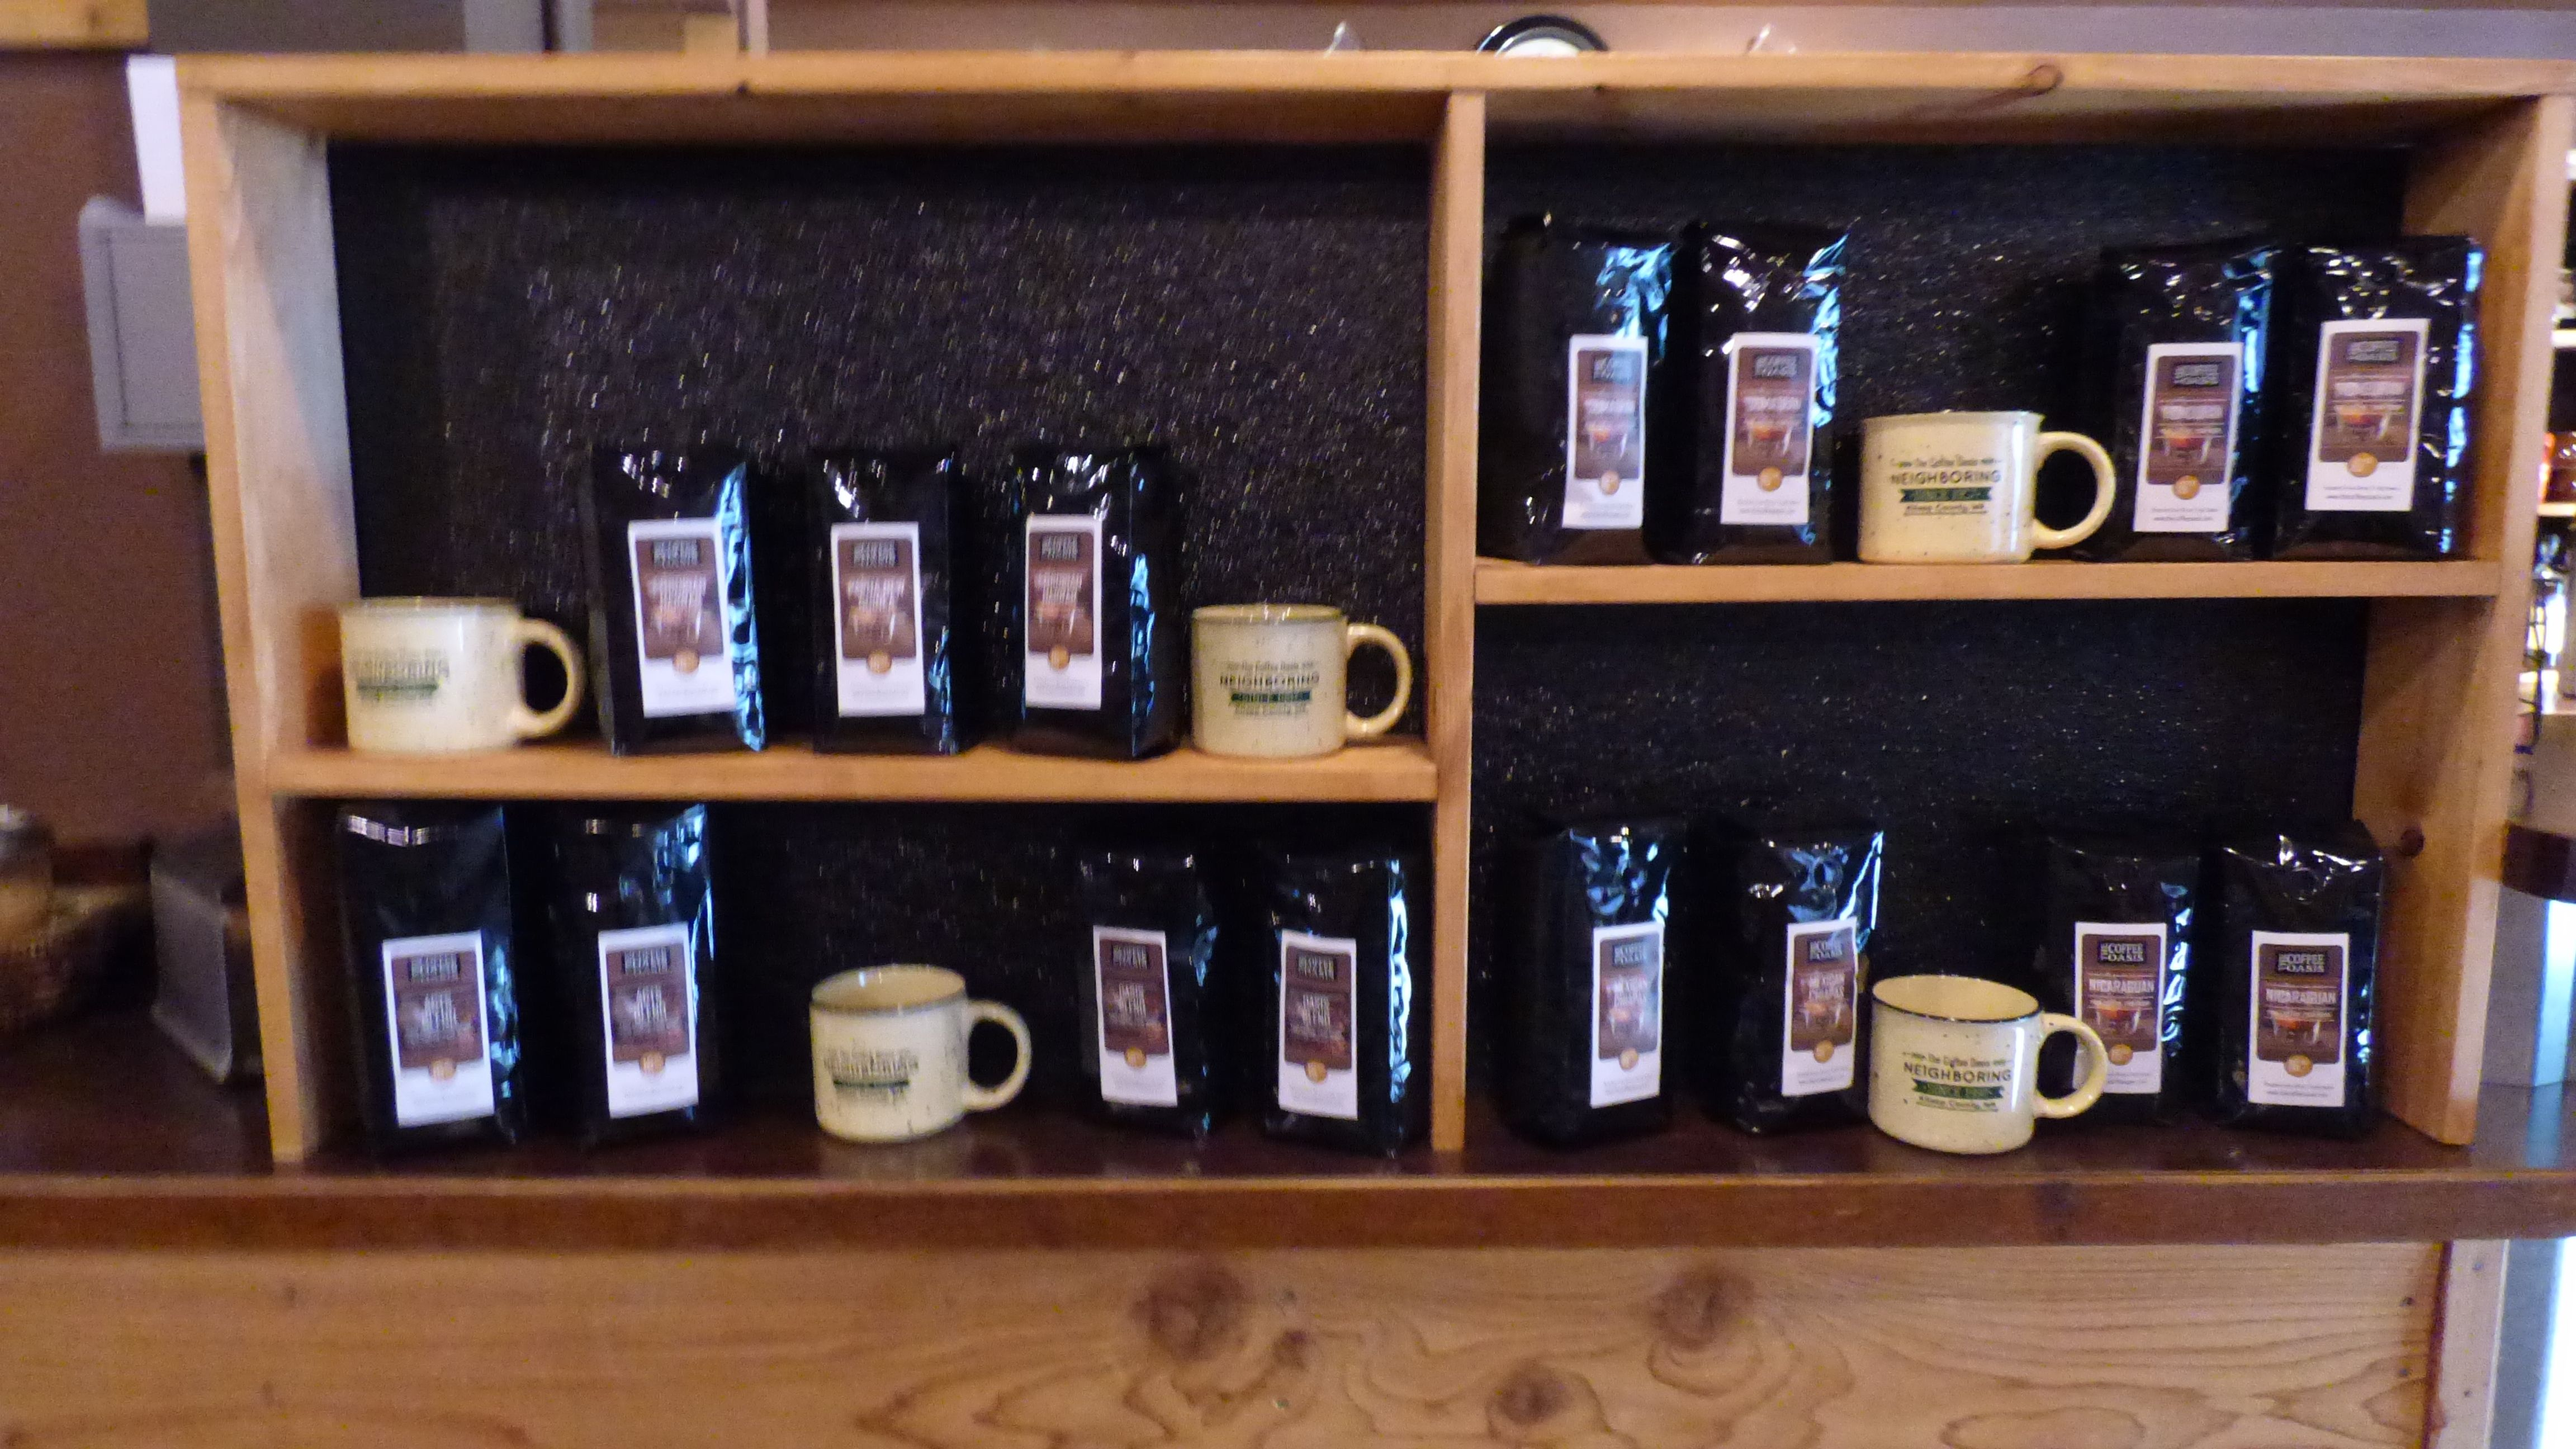 The Coffee Oasis Bremerton Buy Yourself Some Ground Coffee Or Souvenir Cups Kitsap Charity Kitsapcares B Coffee Shop Business Real Coffee Coffee Business